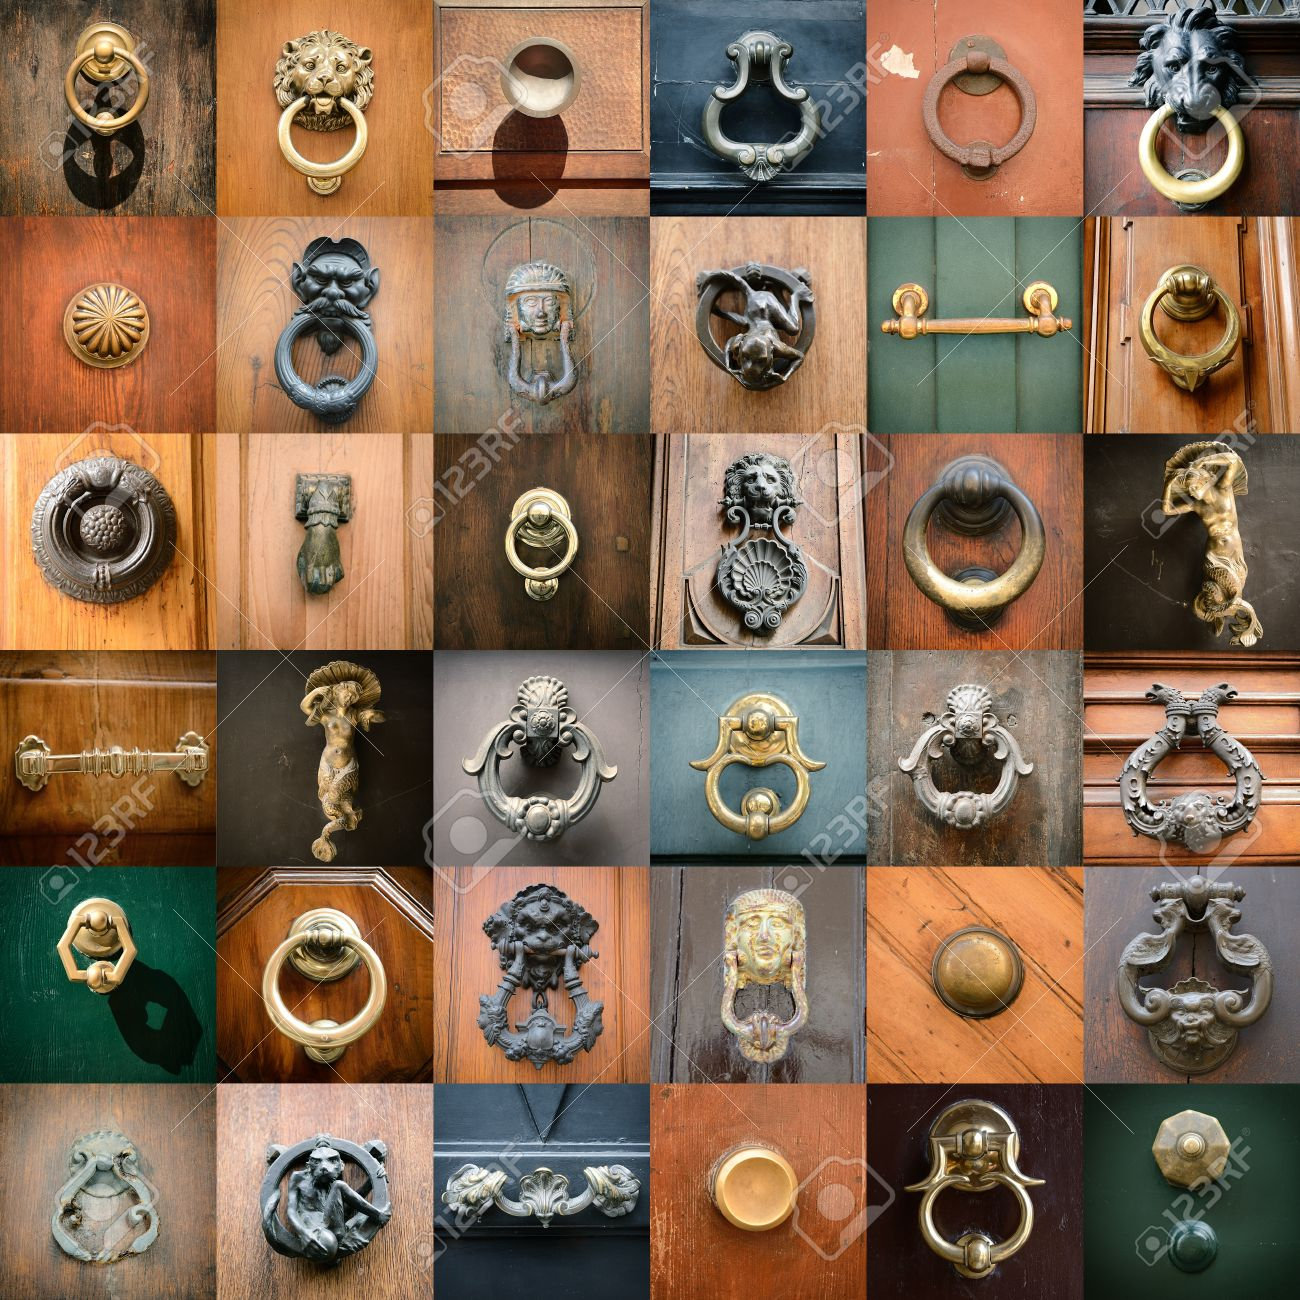 doorknobs of ancient doors in Rome, collection of beautiful vintage architectural details Stock Photo - 21935989